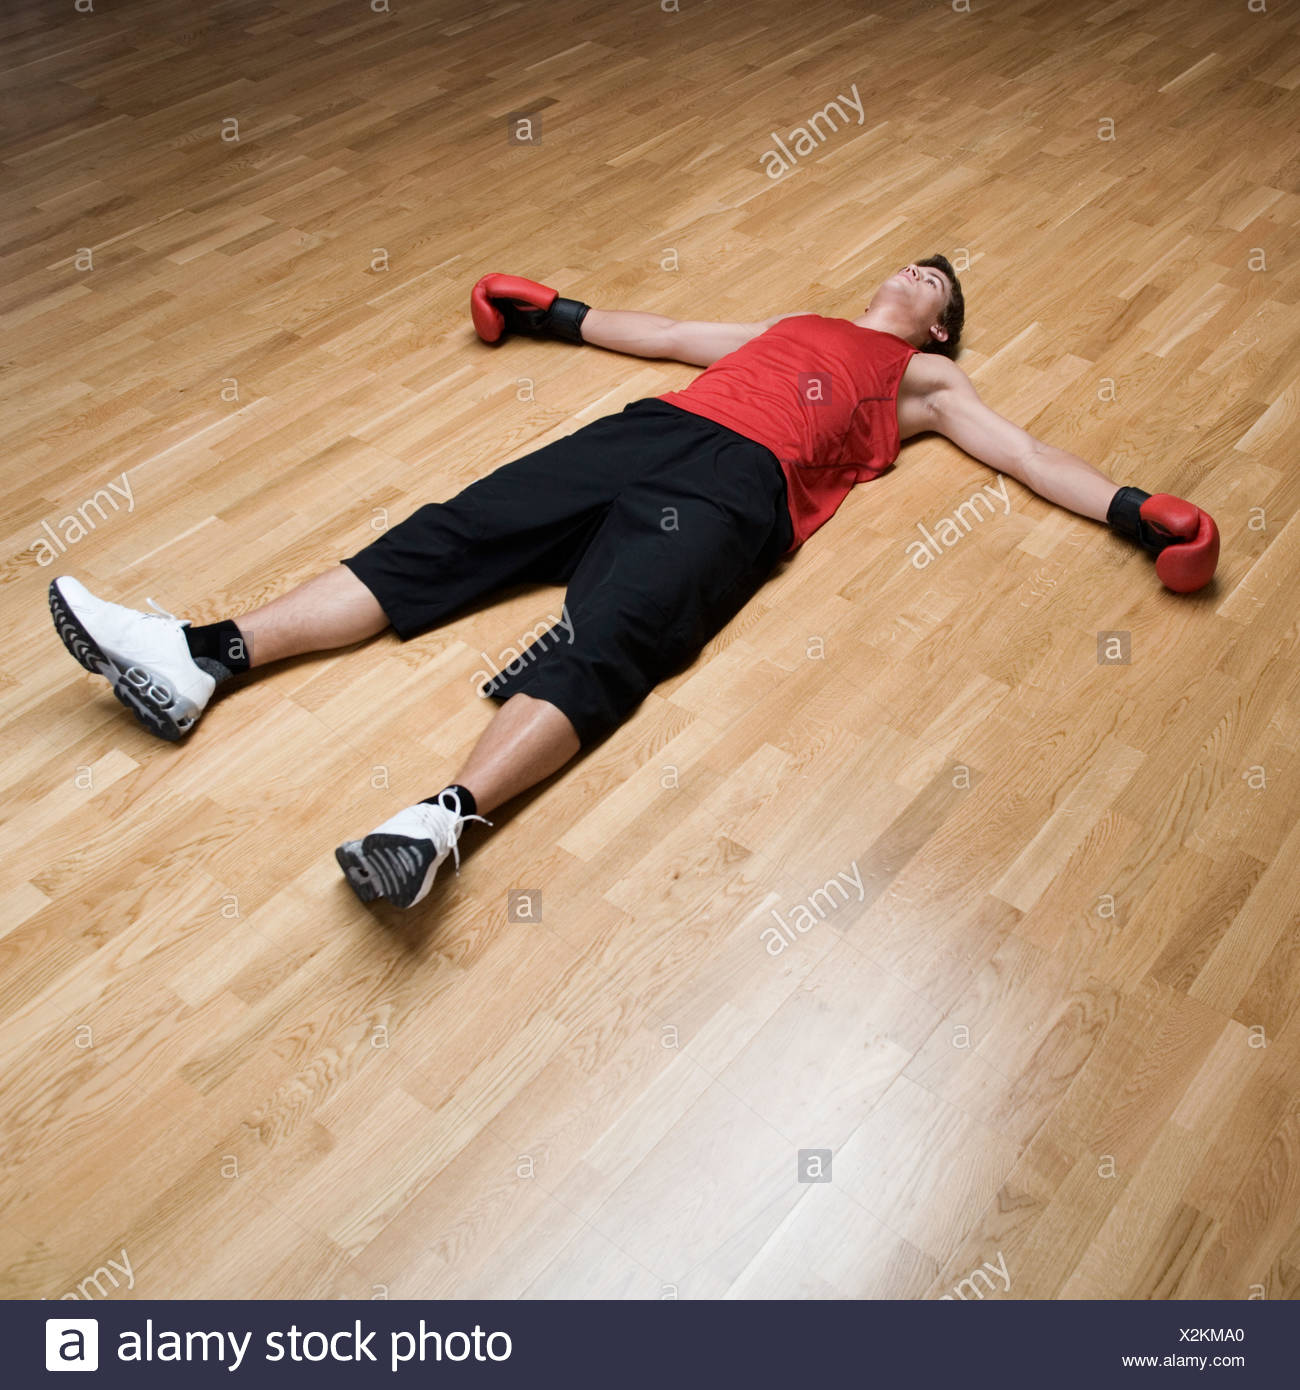 A Boxer Laying On The Floor Stock Photo: 277028248